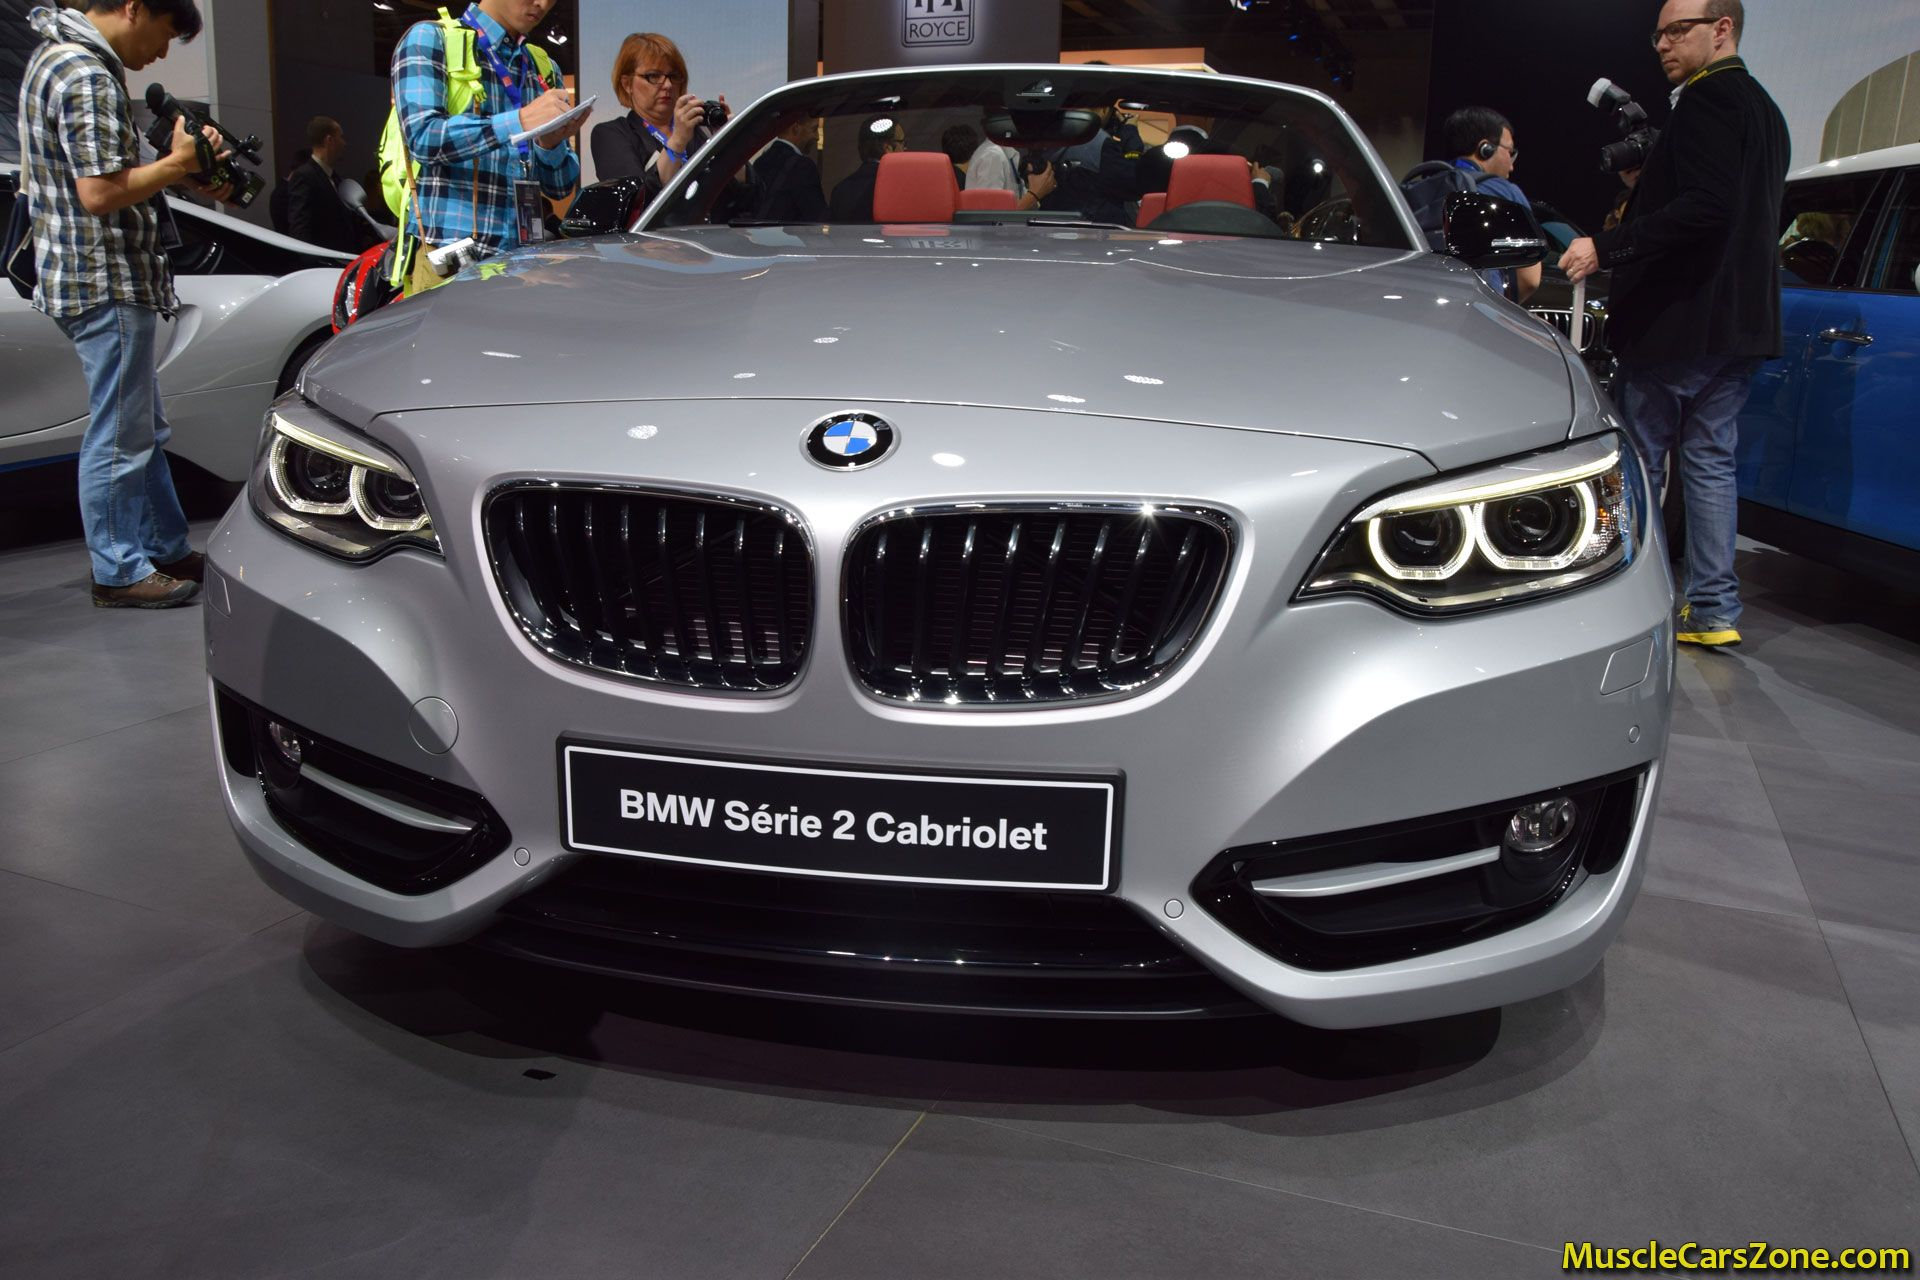 bmw serie 2 cabriolet 2014 paris motor show 1 muscle cars zone. Black Bedroom Furniture Sets. Home Design Ideas